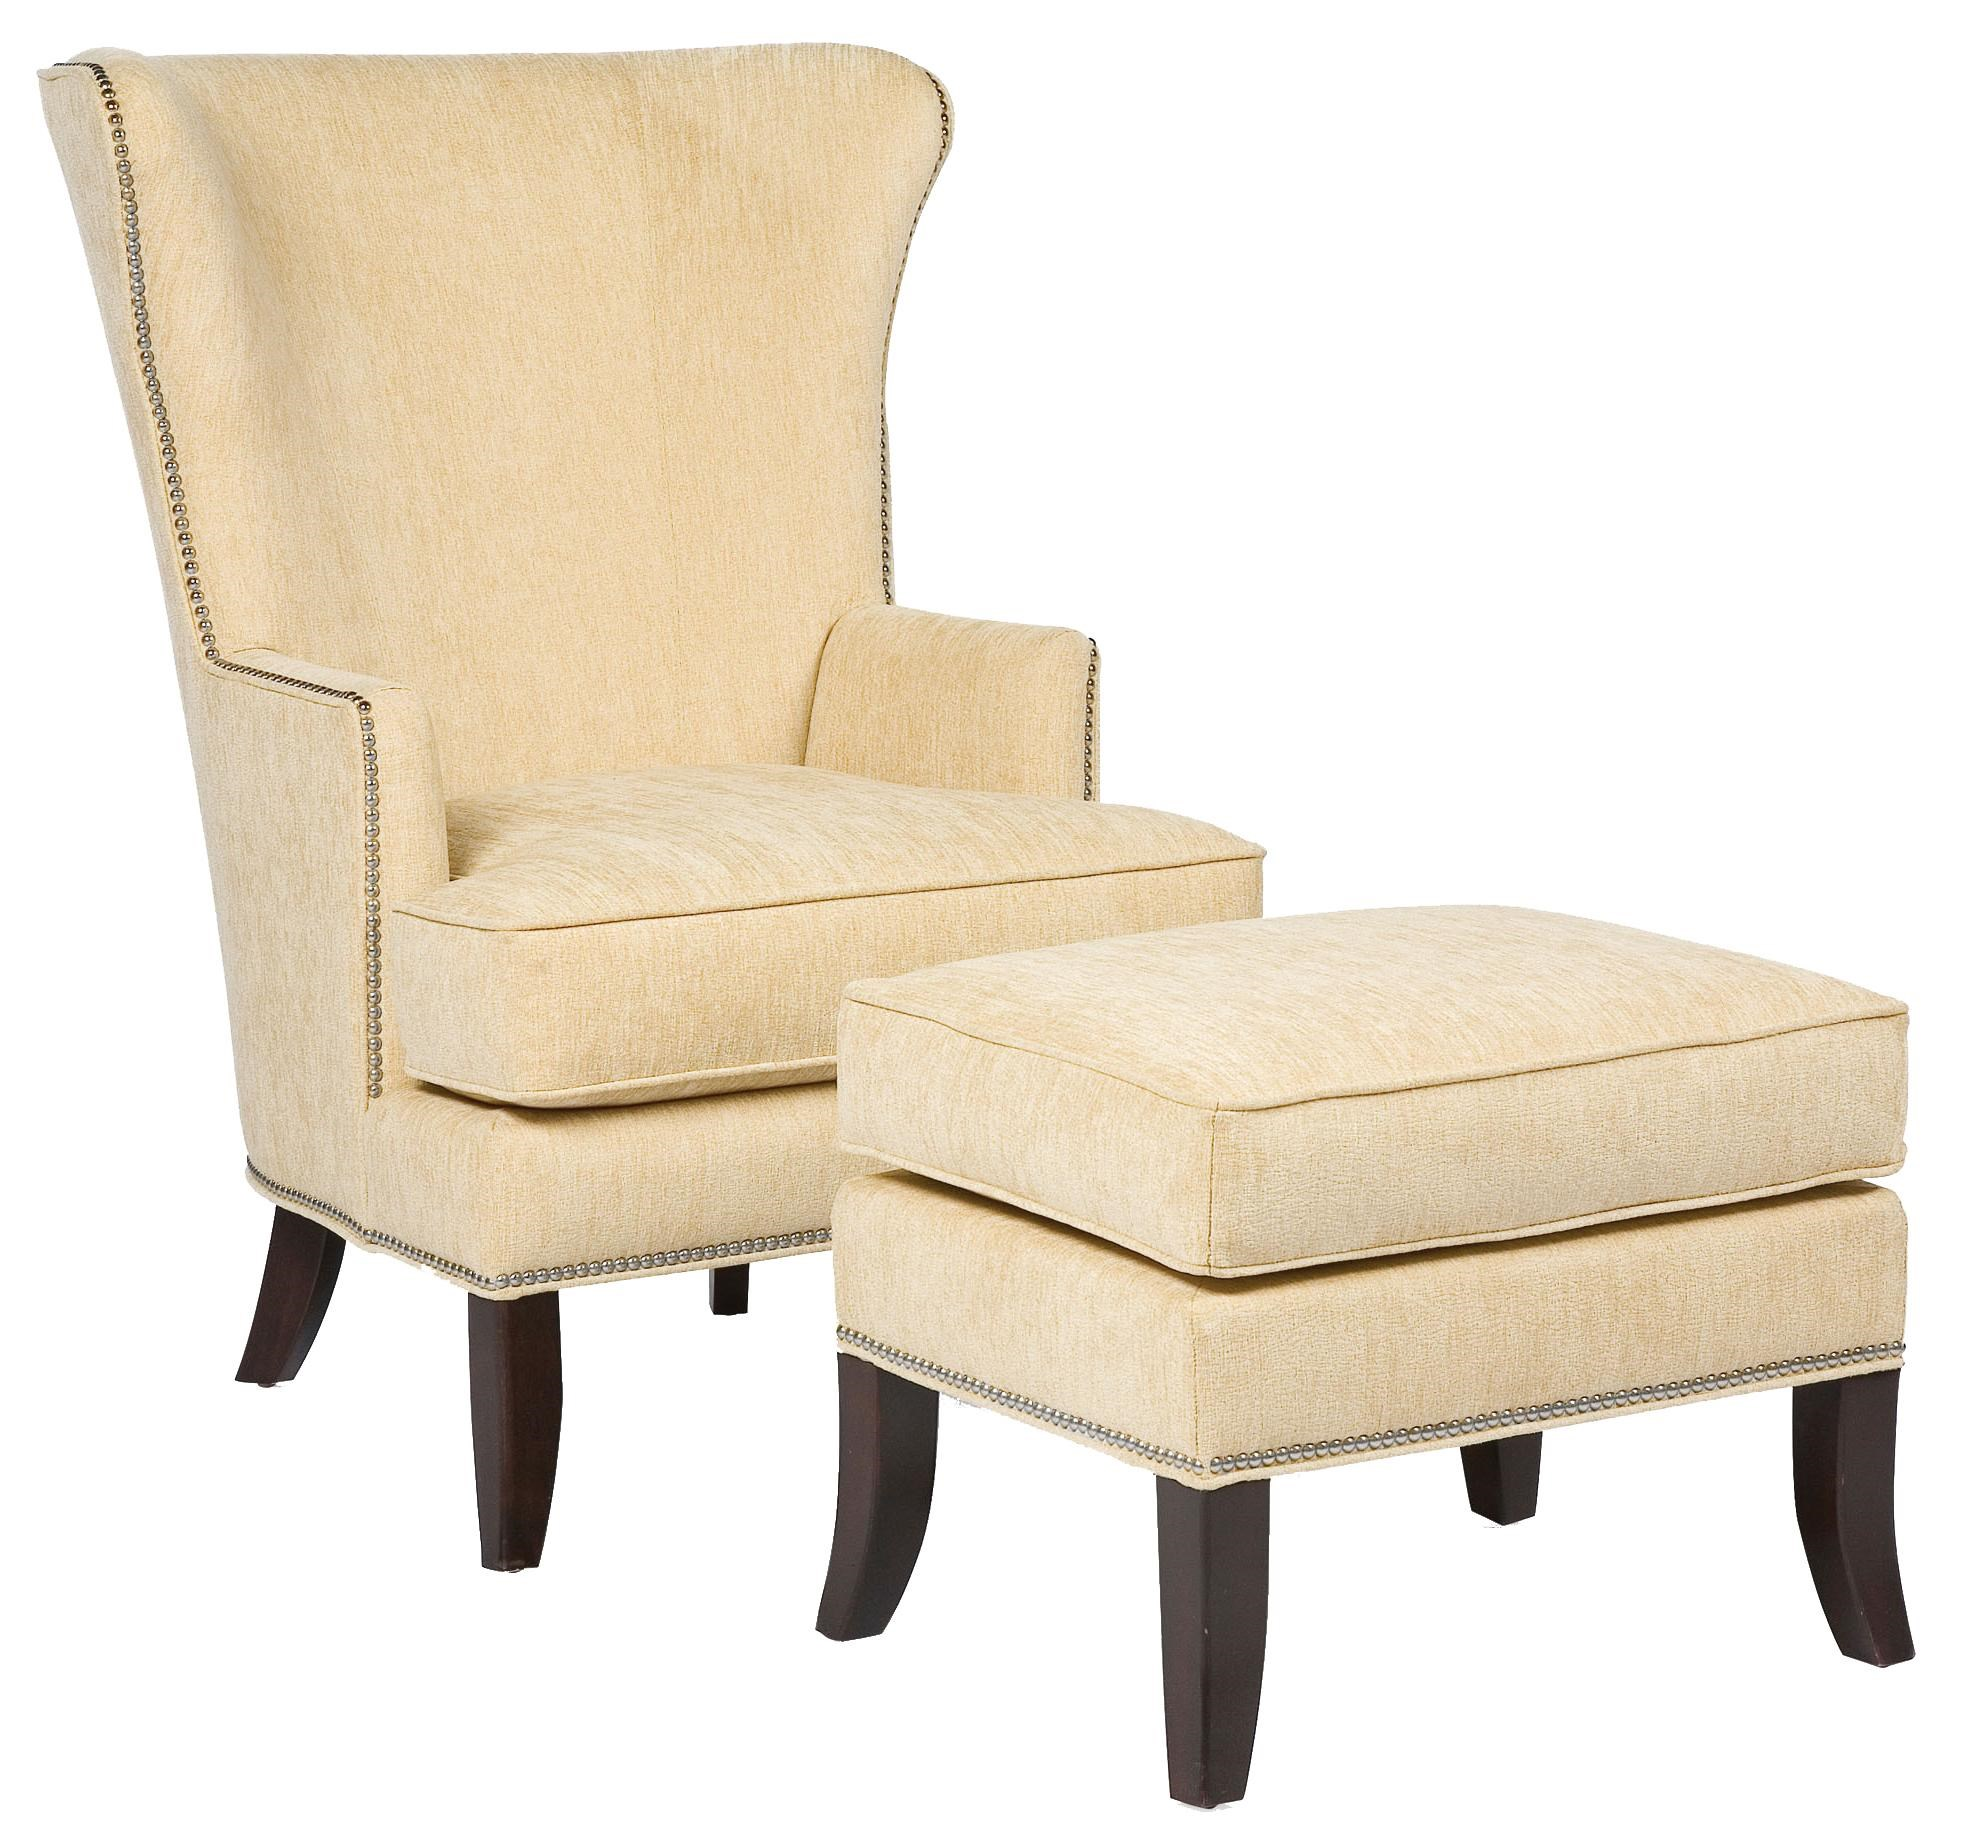 Fairfield Chairs Contemporary Wing Chair U0026 Ottoman Set With Nail Head Trim